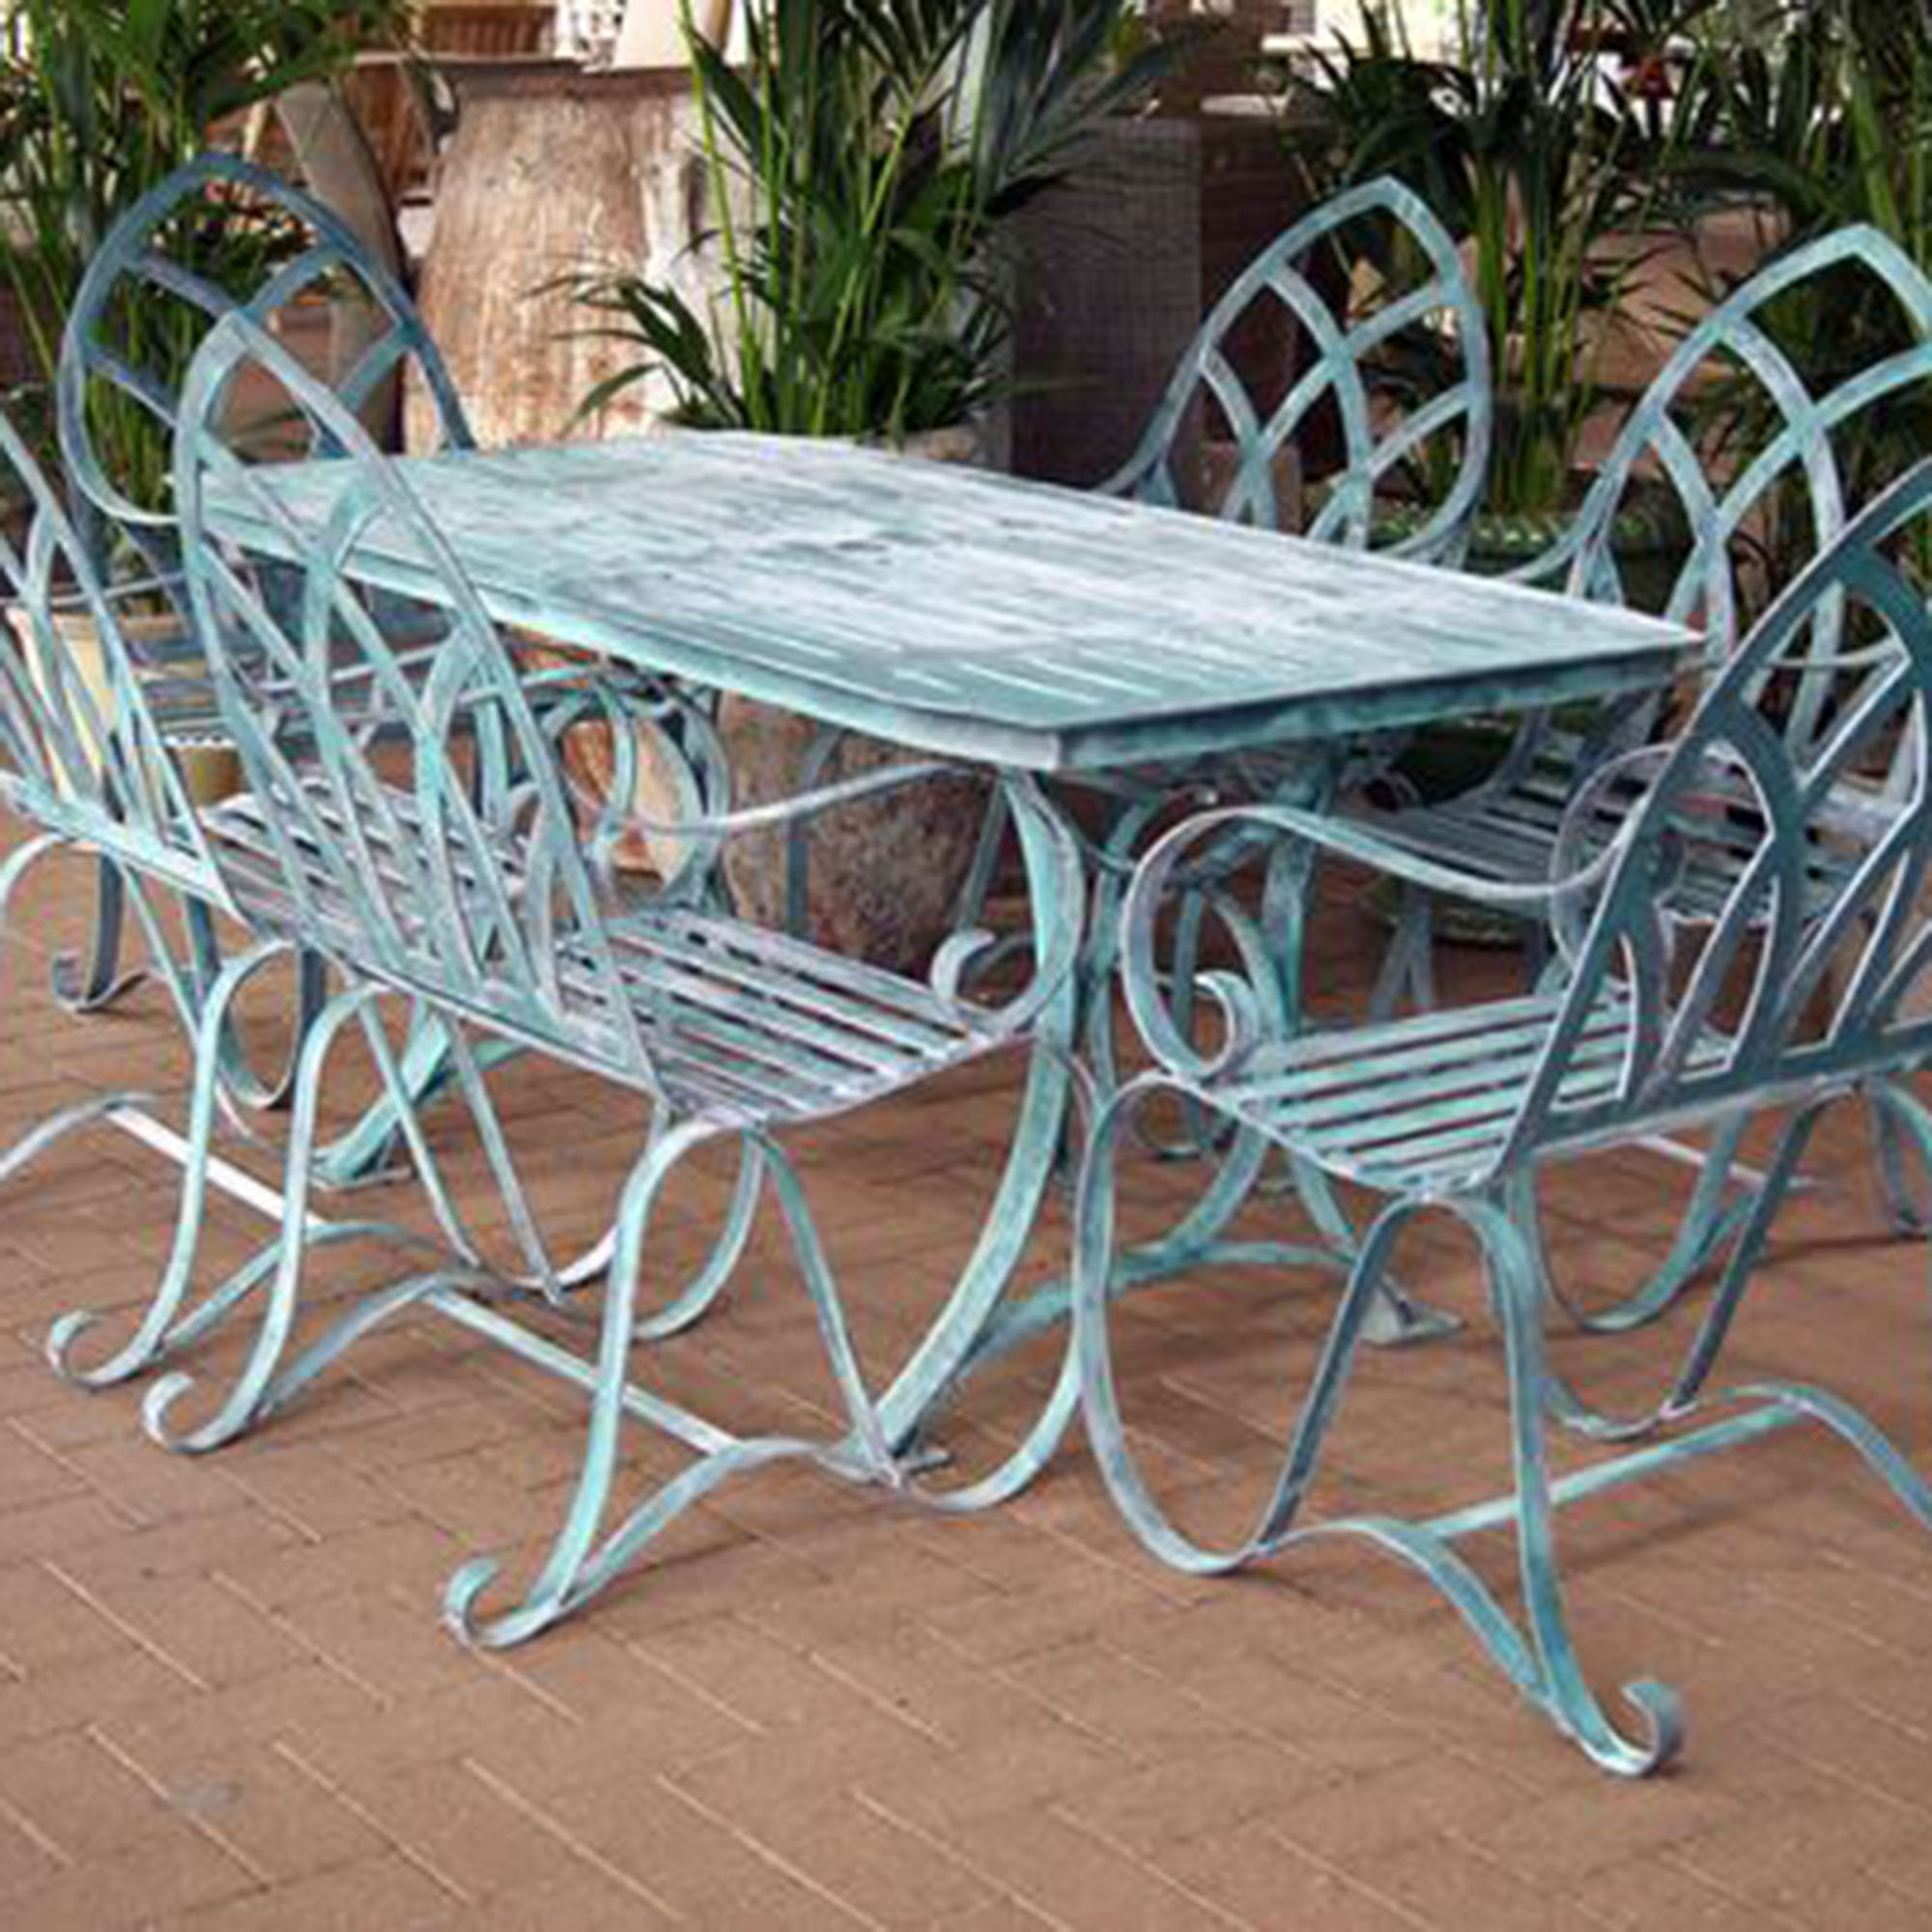 . Why you should buy cast aluminum garden furniture